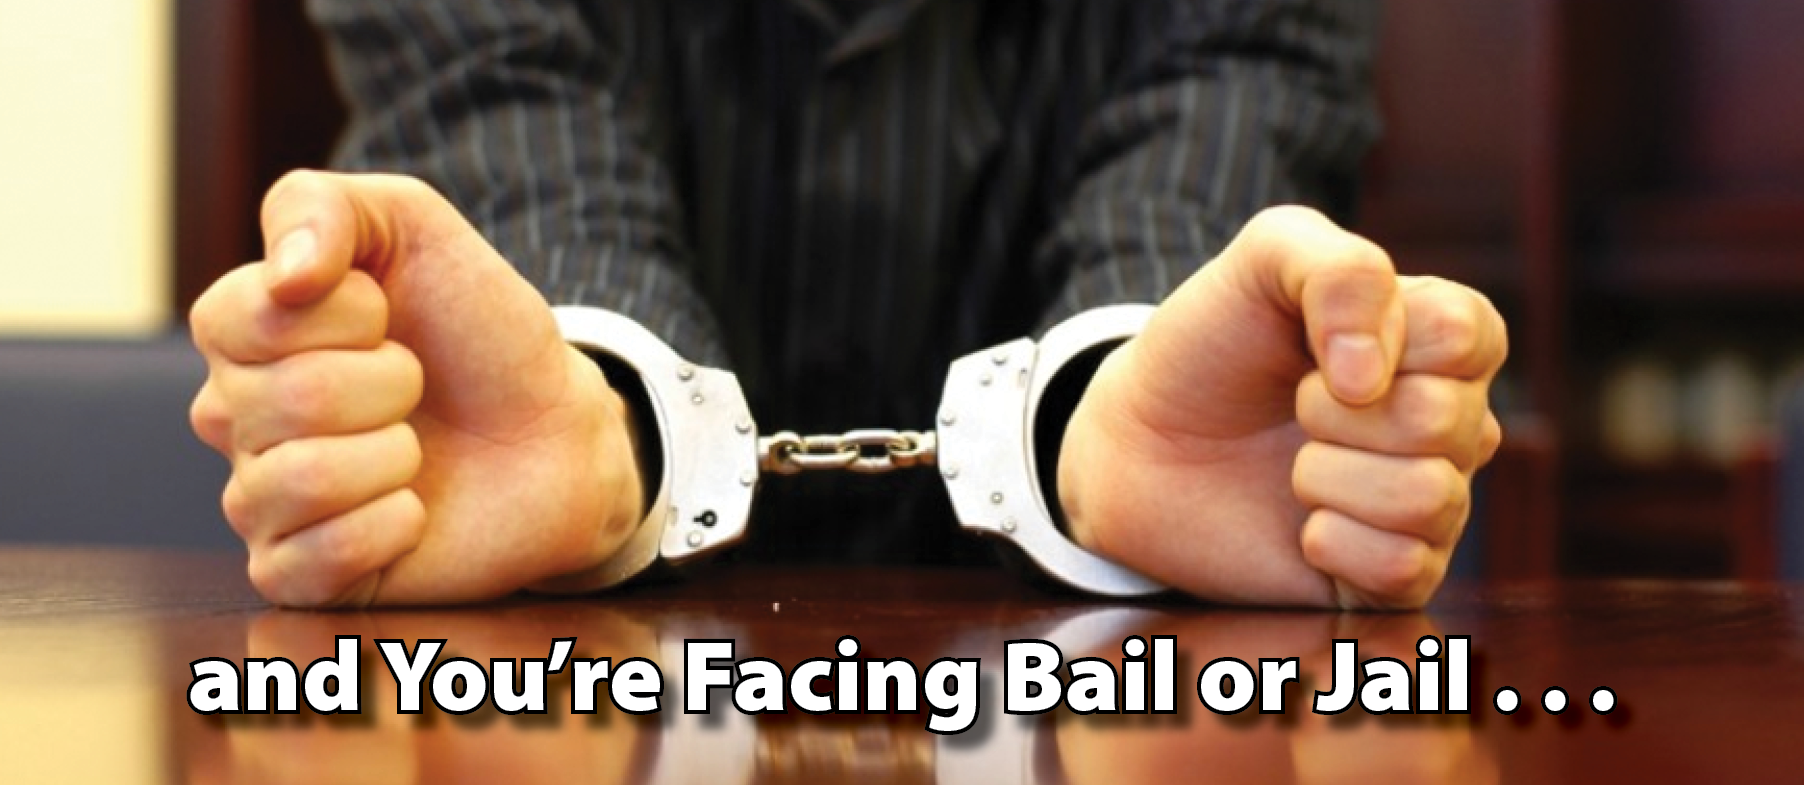 Affordable Bail, Quick Bail, Reliable Bail Service, Big Boys Bail Bonds Is There 24 Hours A Day When You Need Us, Call Us FIRST!, Judge Set The Bail, Bail Set Now What?, Who Can Bail Me Out?, How To Get Bail?, How Bail Bonds Work?, How Much Do Bail Bonds Cost?, Arrested and Need Bail?, In Jail, Need Bail, 24 Hours A Day Bail Bonds, Big Boys Bail Bonds, Your First Choice, Professional Bail Bondsman, Quick Release, Call Big Boys Bail Bonds 941 484-2663 (BOND)  FIRST! Best In Service At Time Of Need! ""